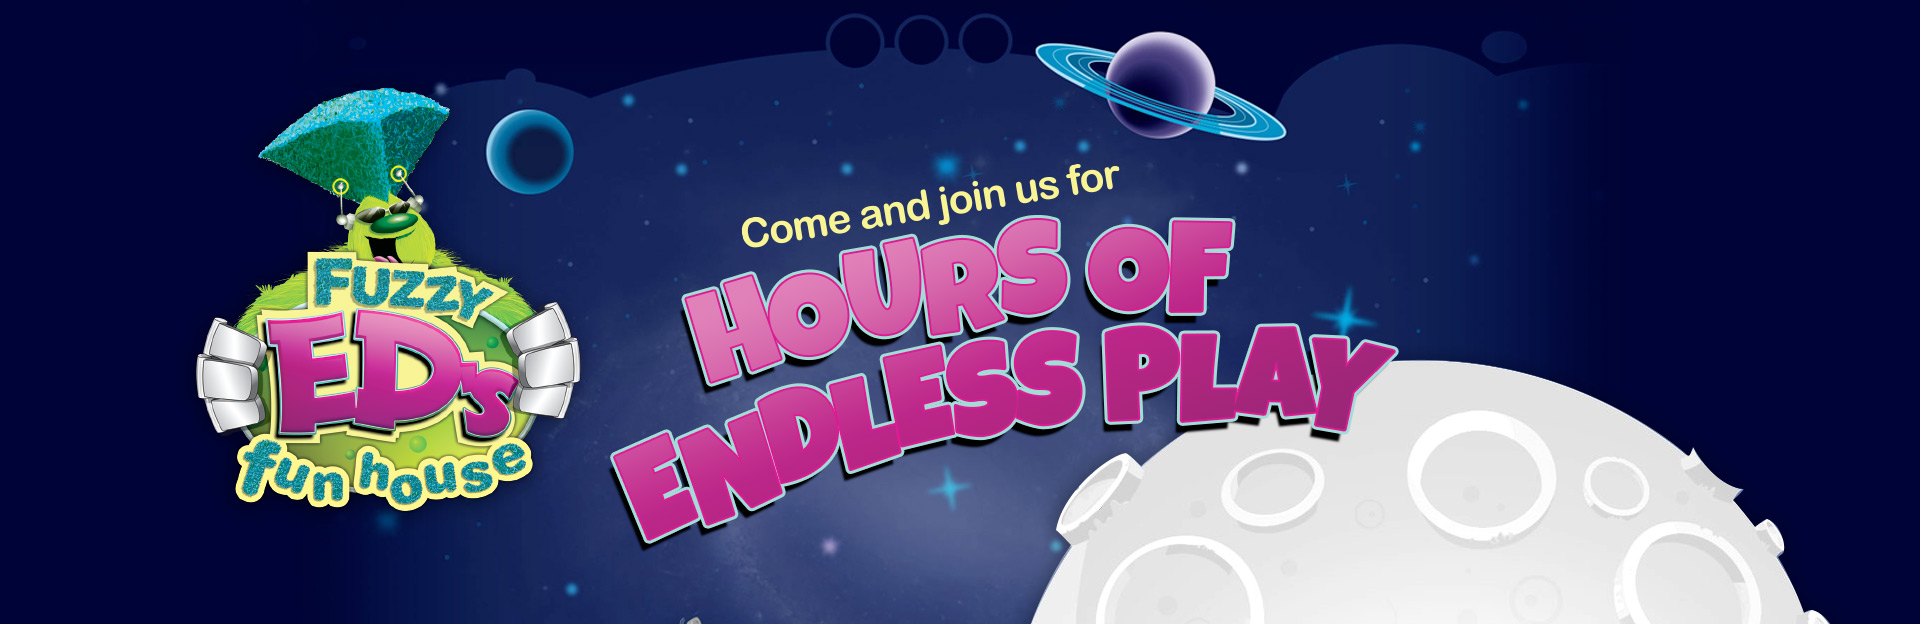 Join us for hours of endless play